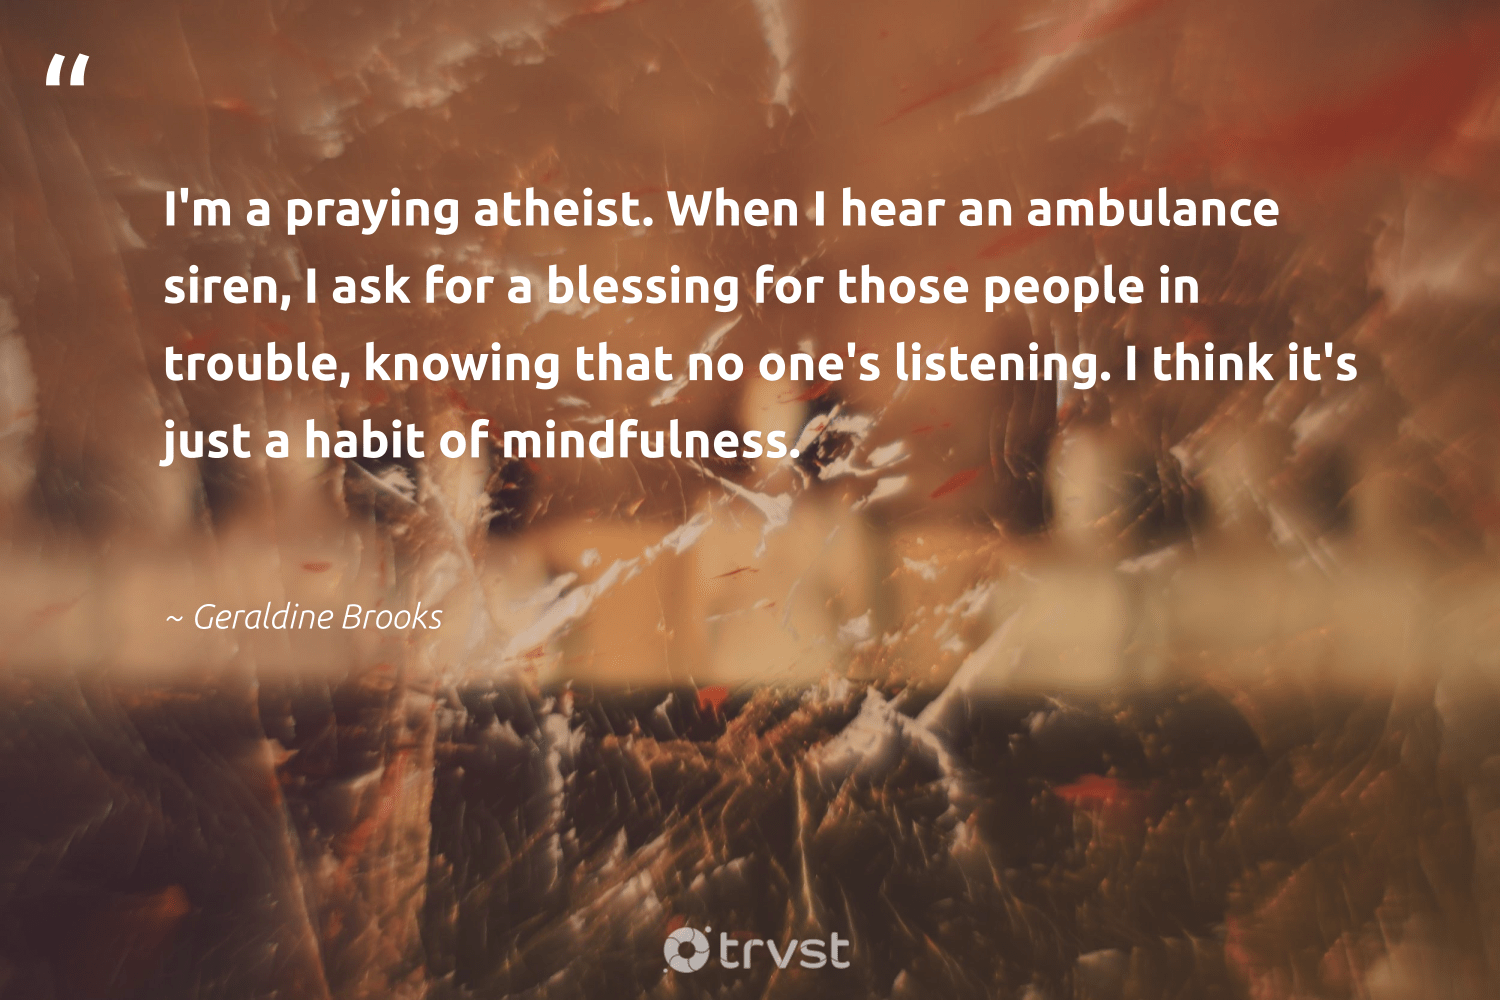 """""""I'm a praying atheist. When I hear an ambulance siren, I ask for a blessing for those people in trouble, knowing that no one's listening. I think it's just a habit of mindfulness.""""  - Geraldine Brooks #trvst #quotes #mindfulness #meditate #wellness #health #dotherightthing #positivity #mindful #mindset #gogreen #entrepreneurmindset"""